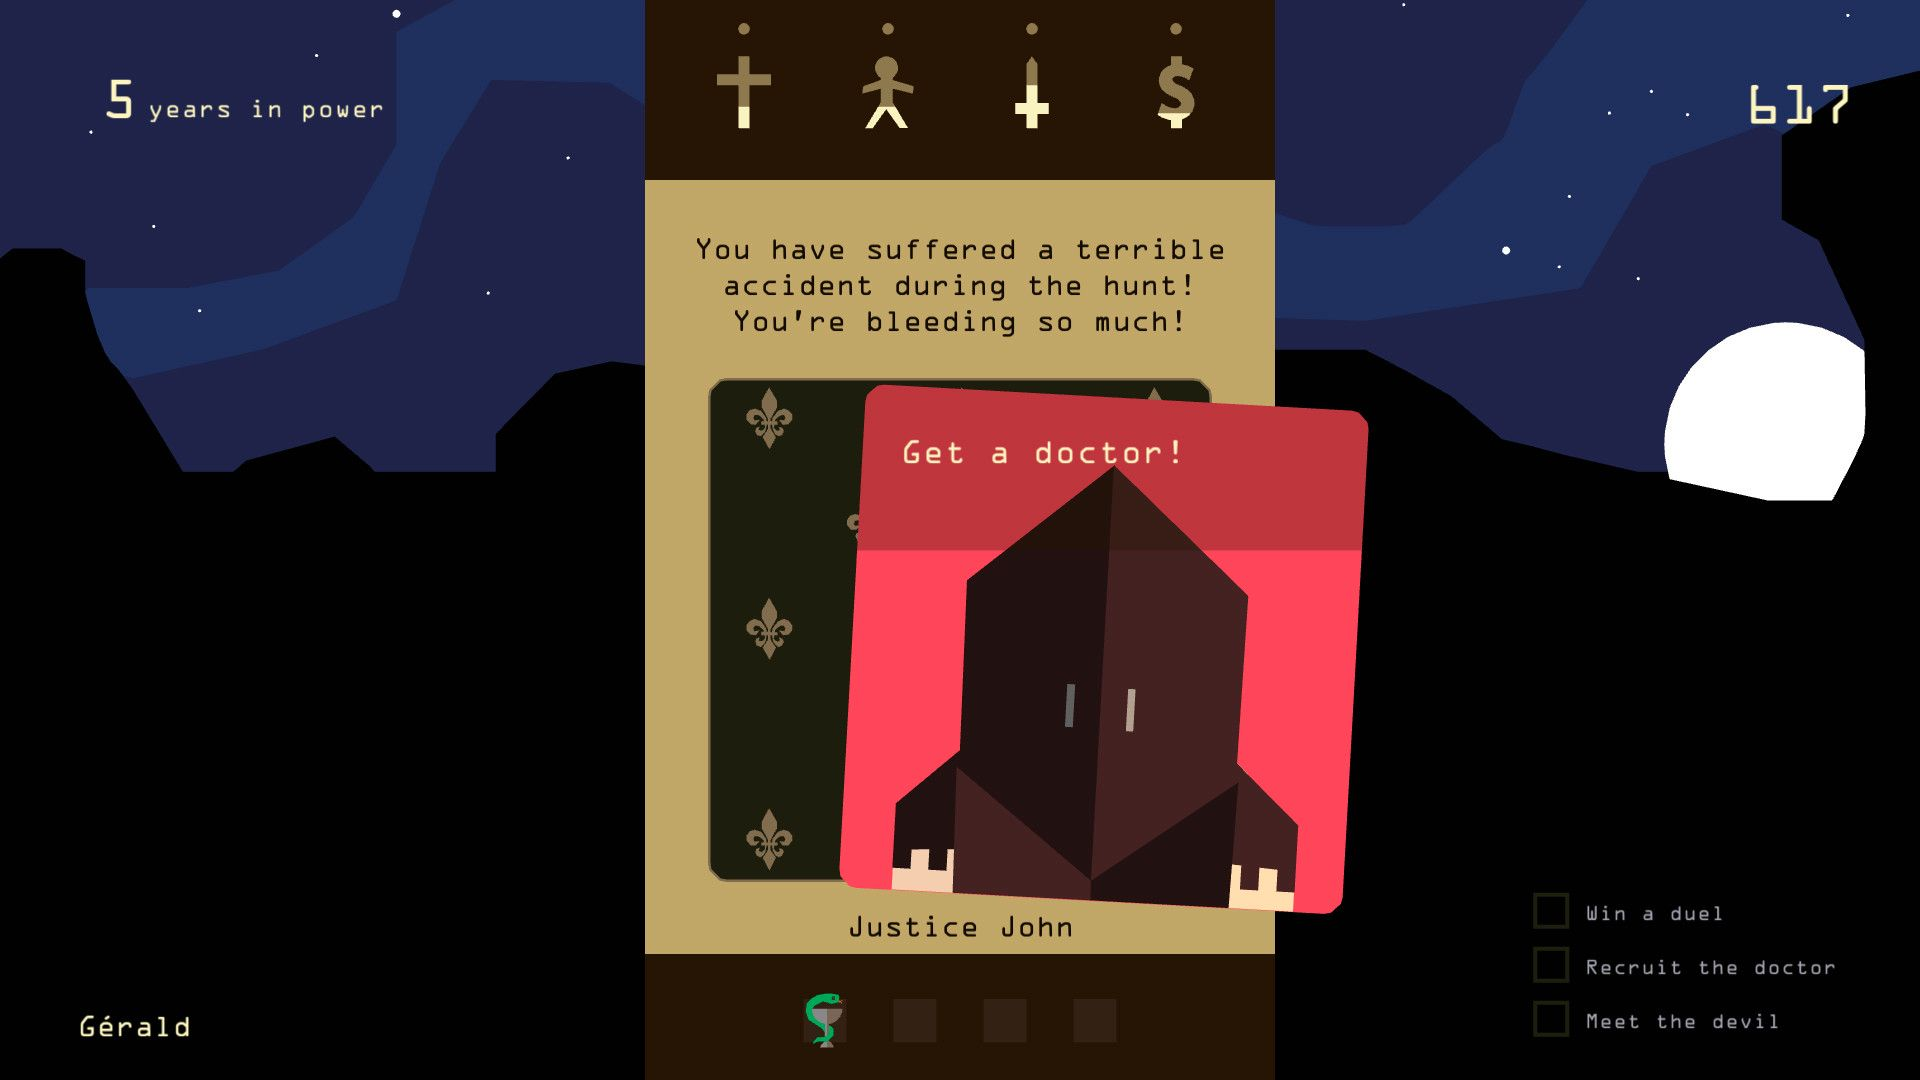 A screenshot from Reigns showing that you have been injured in a hunting accident and are bleeding, oh no!